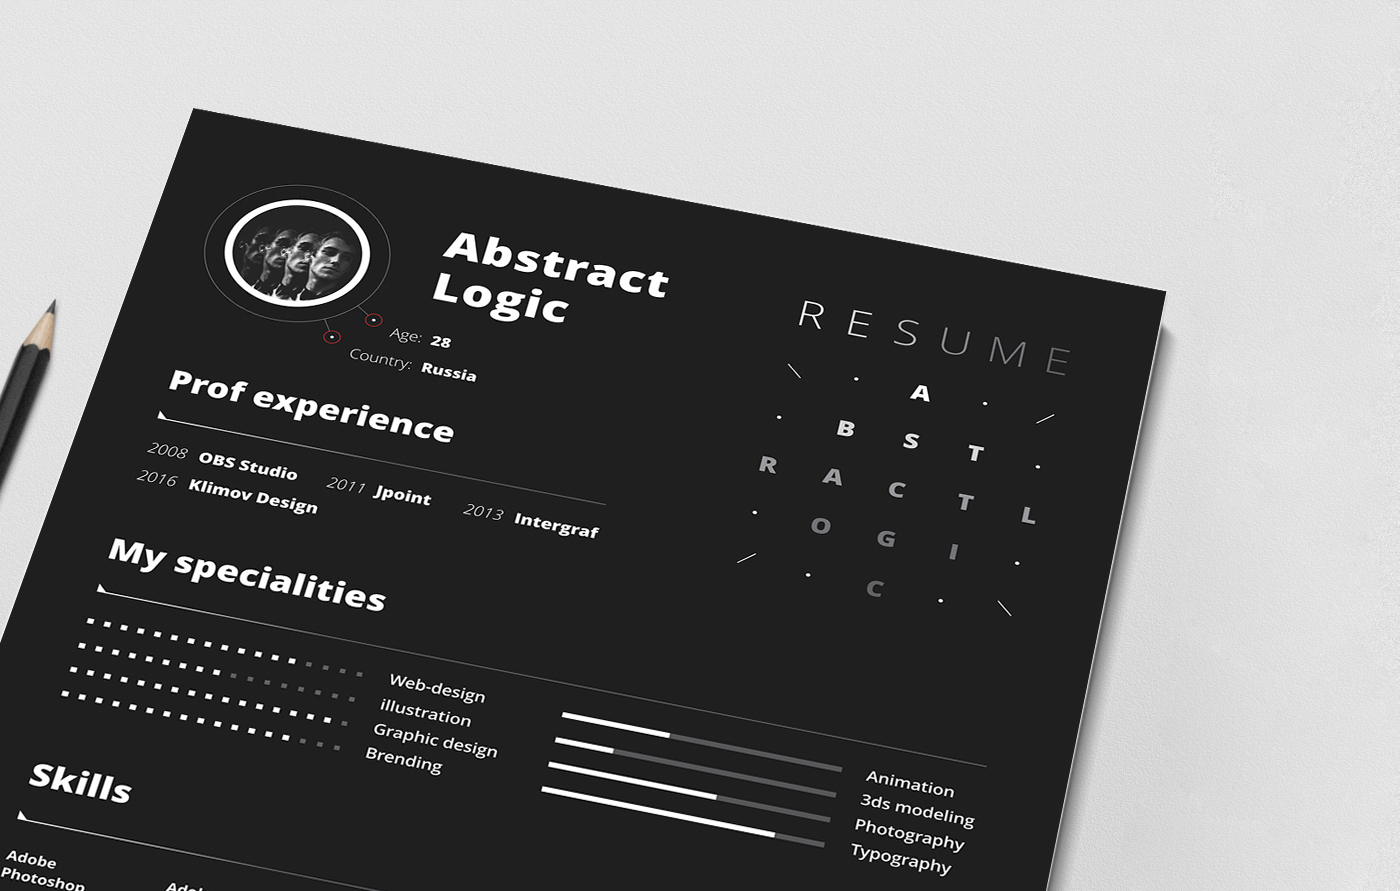 free resume builder app templates create your unique with top rated totally free resume templates totally free resume templates builder benefit you - Totally Free Resume Builder